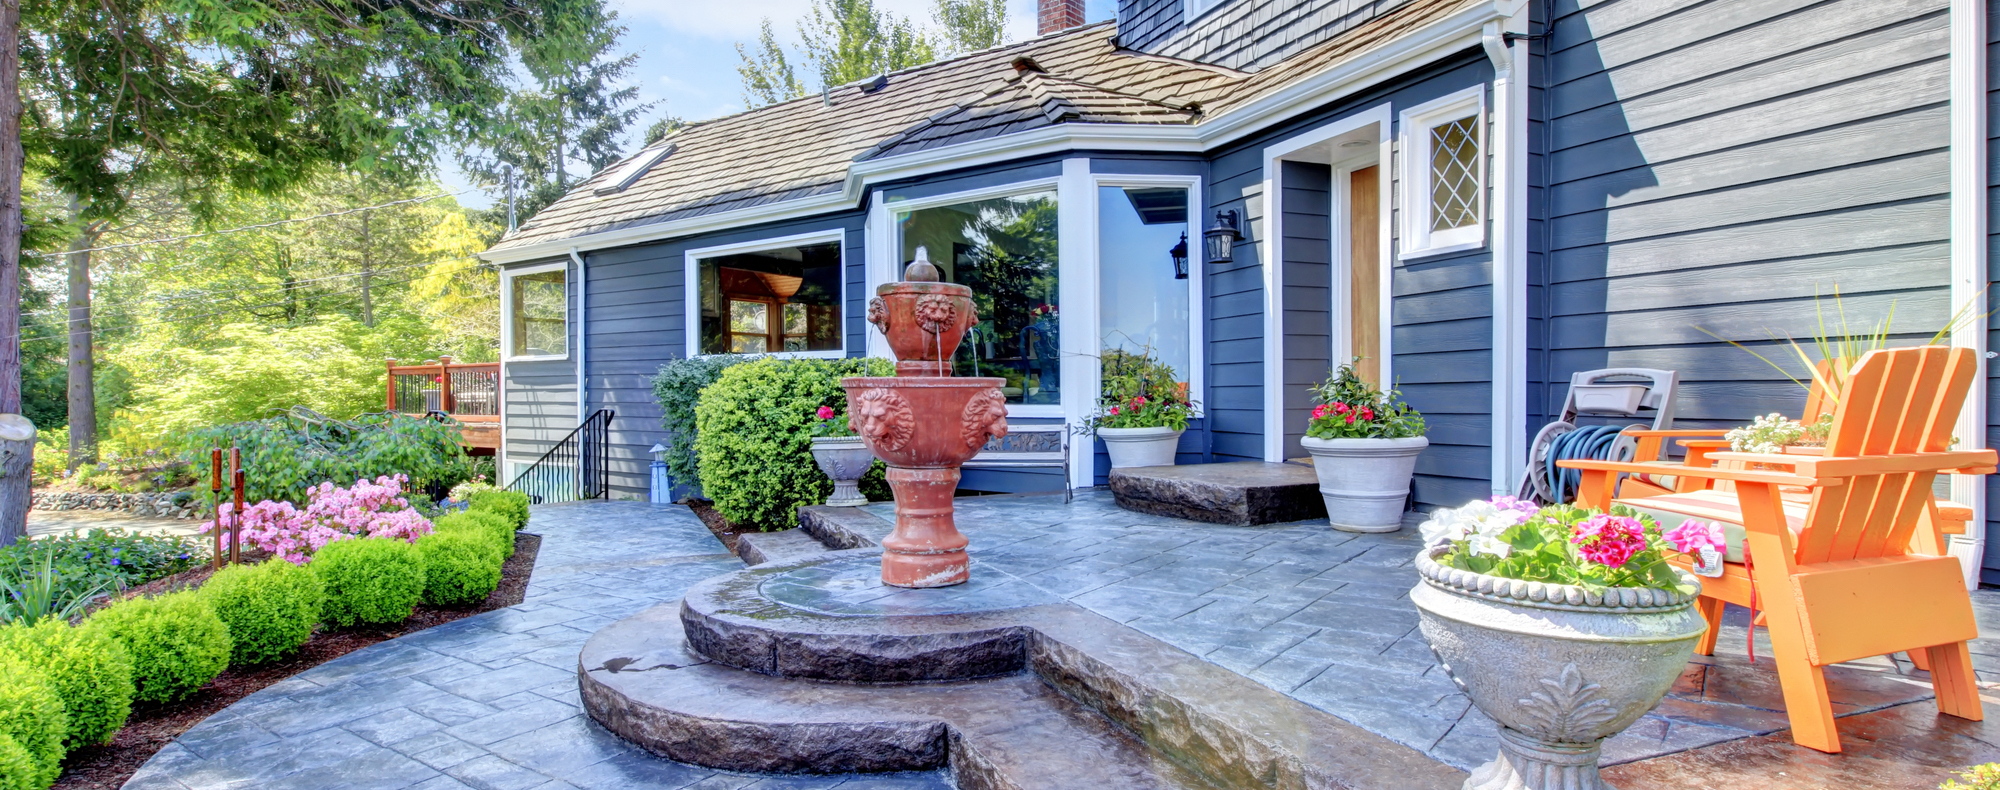 The Importance Of Curb Appeal To Selling A House Fortunebuilders